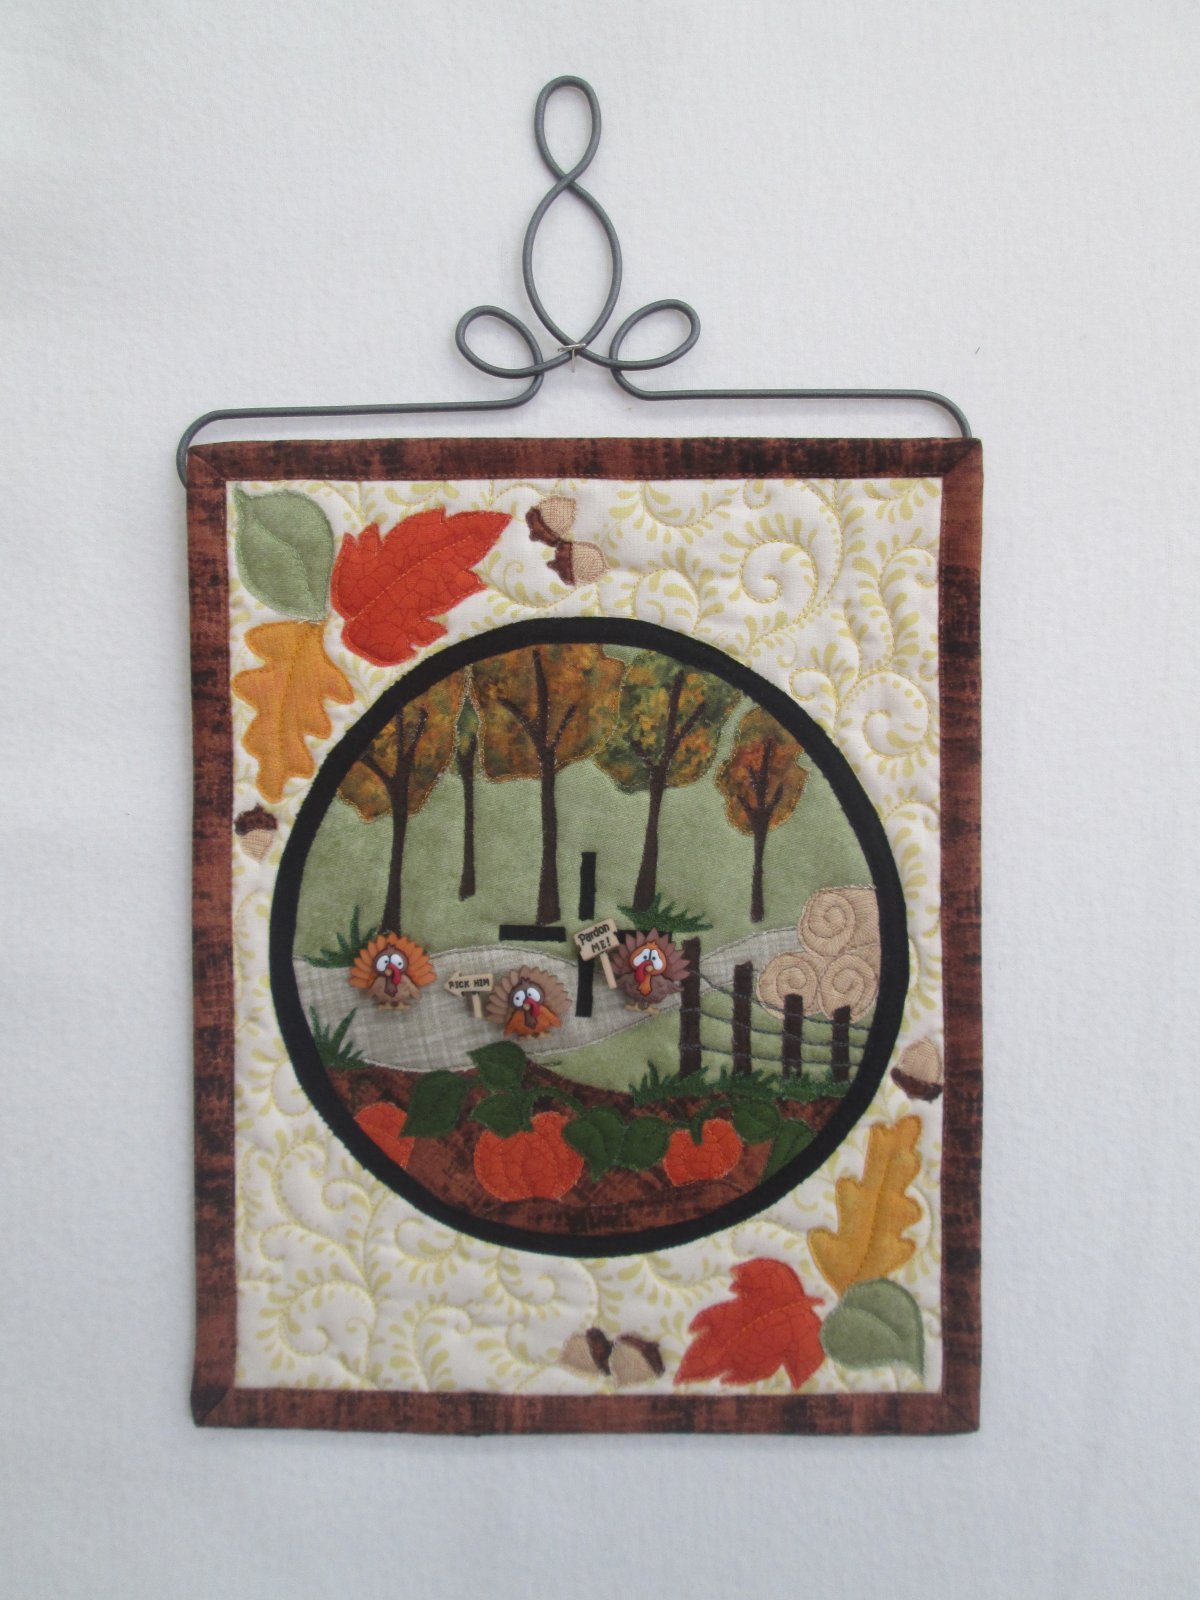 Turkey Shoot Wall Hanging Kit 9 x 11 1/2  includes Turkey Trot buttons pattern & binding